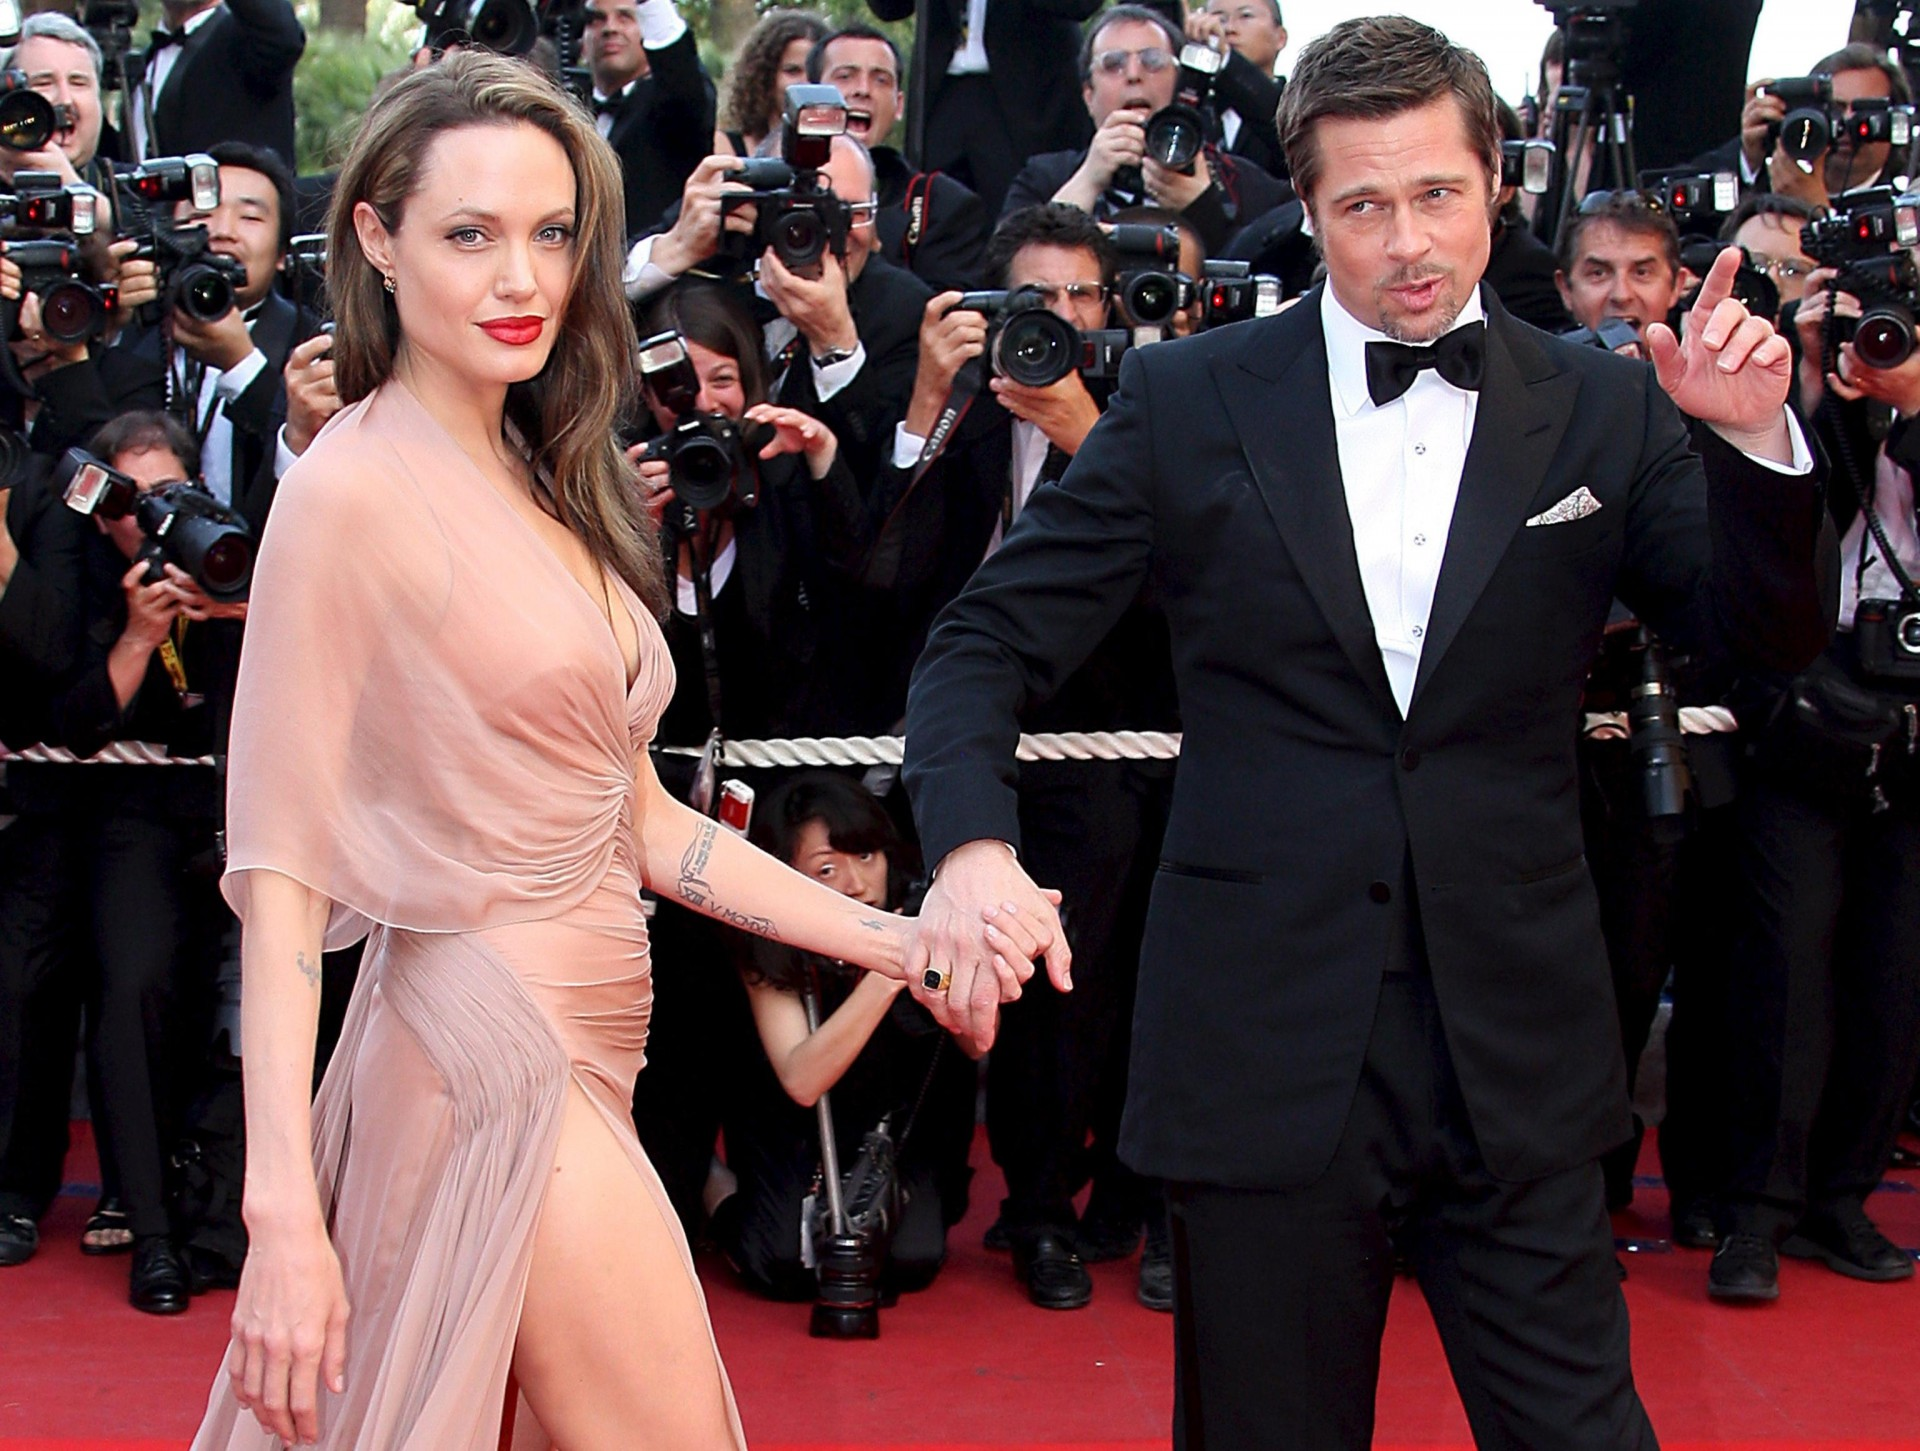 epa05549365 (FILE) A file picture dated 20 May 2009 shows US actors Brad Pitt (R) and Angelina Jolie (L) arriving for the gala screening of the film 'Inglourious Basterds' at the 62nd edition of the Cannes film festival in Cannes, France. According to media reports from 20 September 2016, Angelina Jolie filed for divorce from her husband Brad Pitt, as her lawyer confirmed. EPA/CHRISTOPHE KARABA